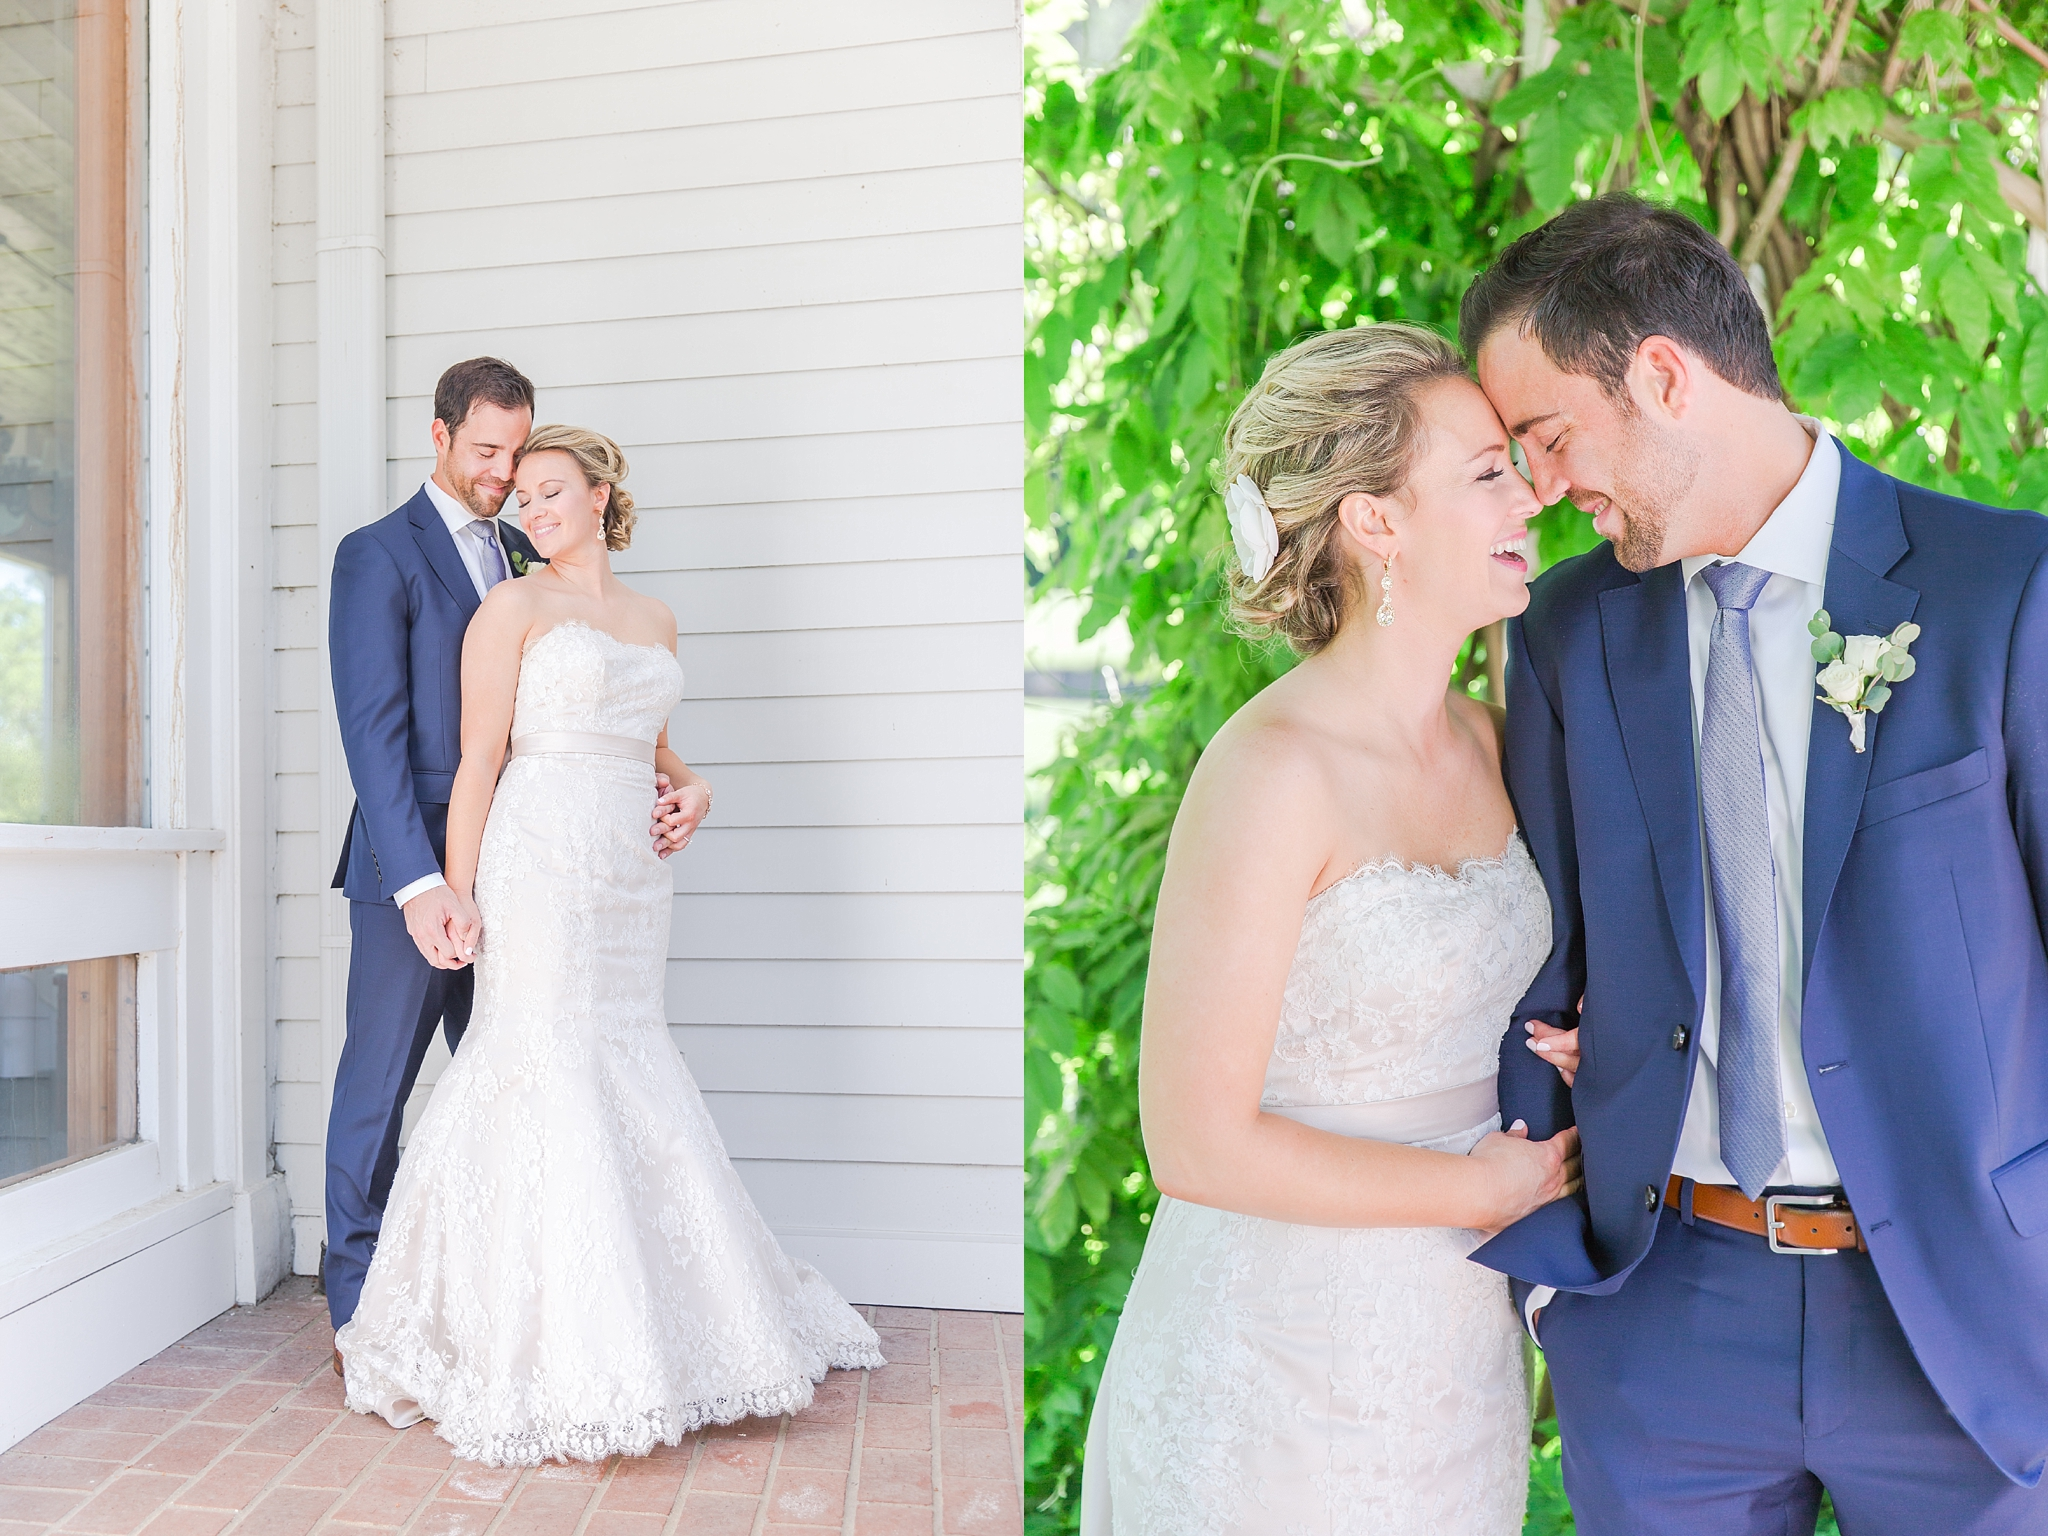 fun-candid-laid-back-wedding-photos-at-wellers-carriage-house-in-saline-michigan-and-at-the-eagle-crest-golf-resort-by-courtney-carolyn-photography_0026.jpg